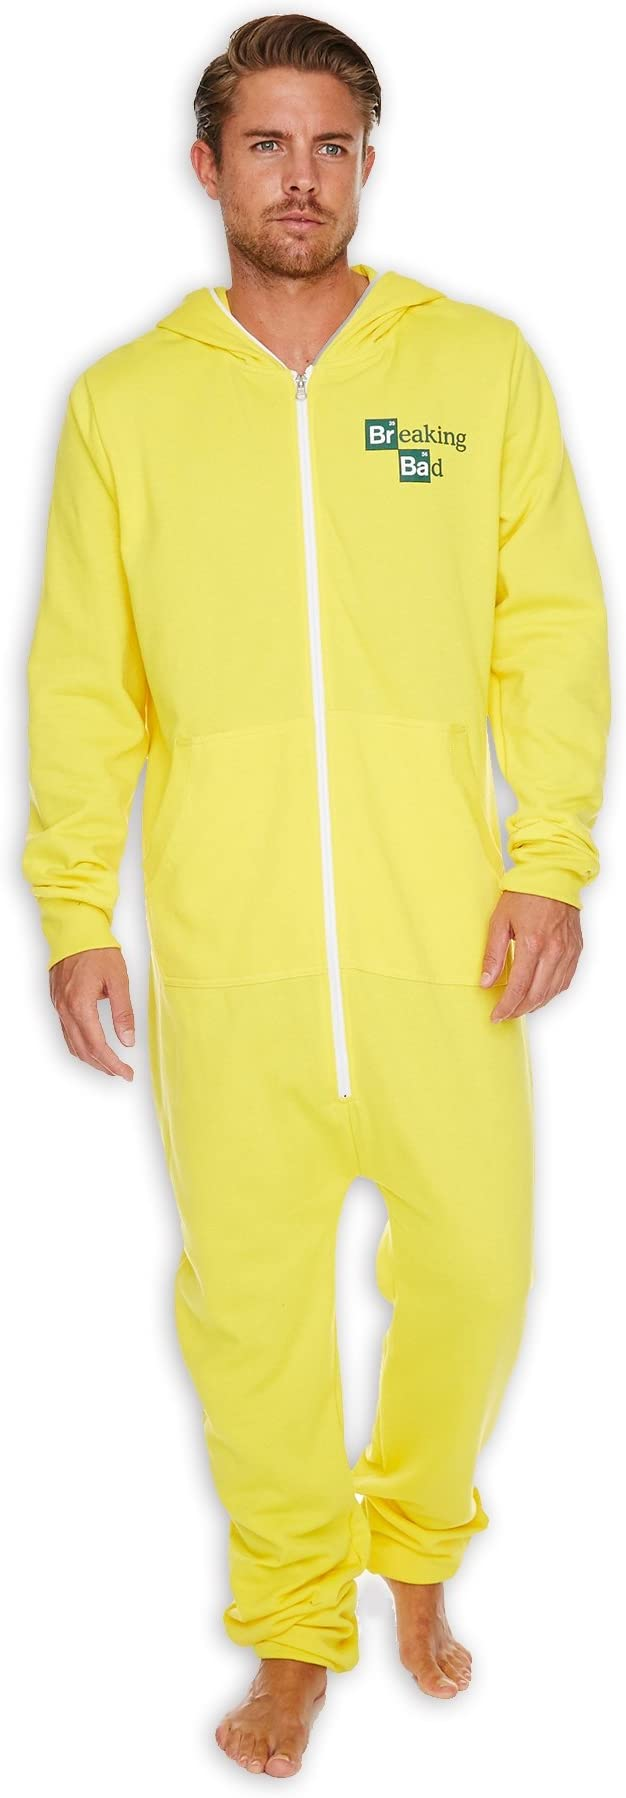 Mens Yellow Breaking Bad Cook Suit Onesie by The Gro Company ...